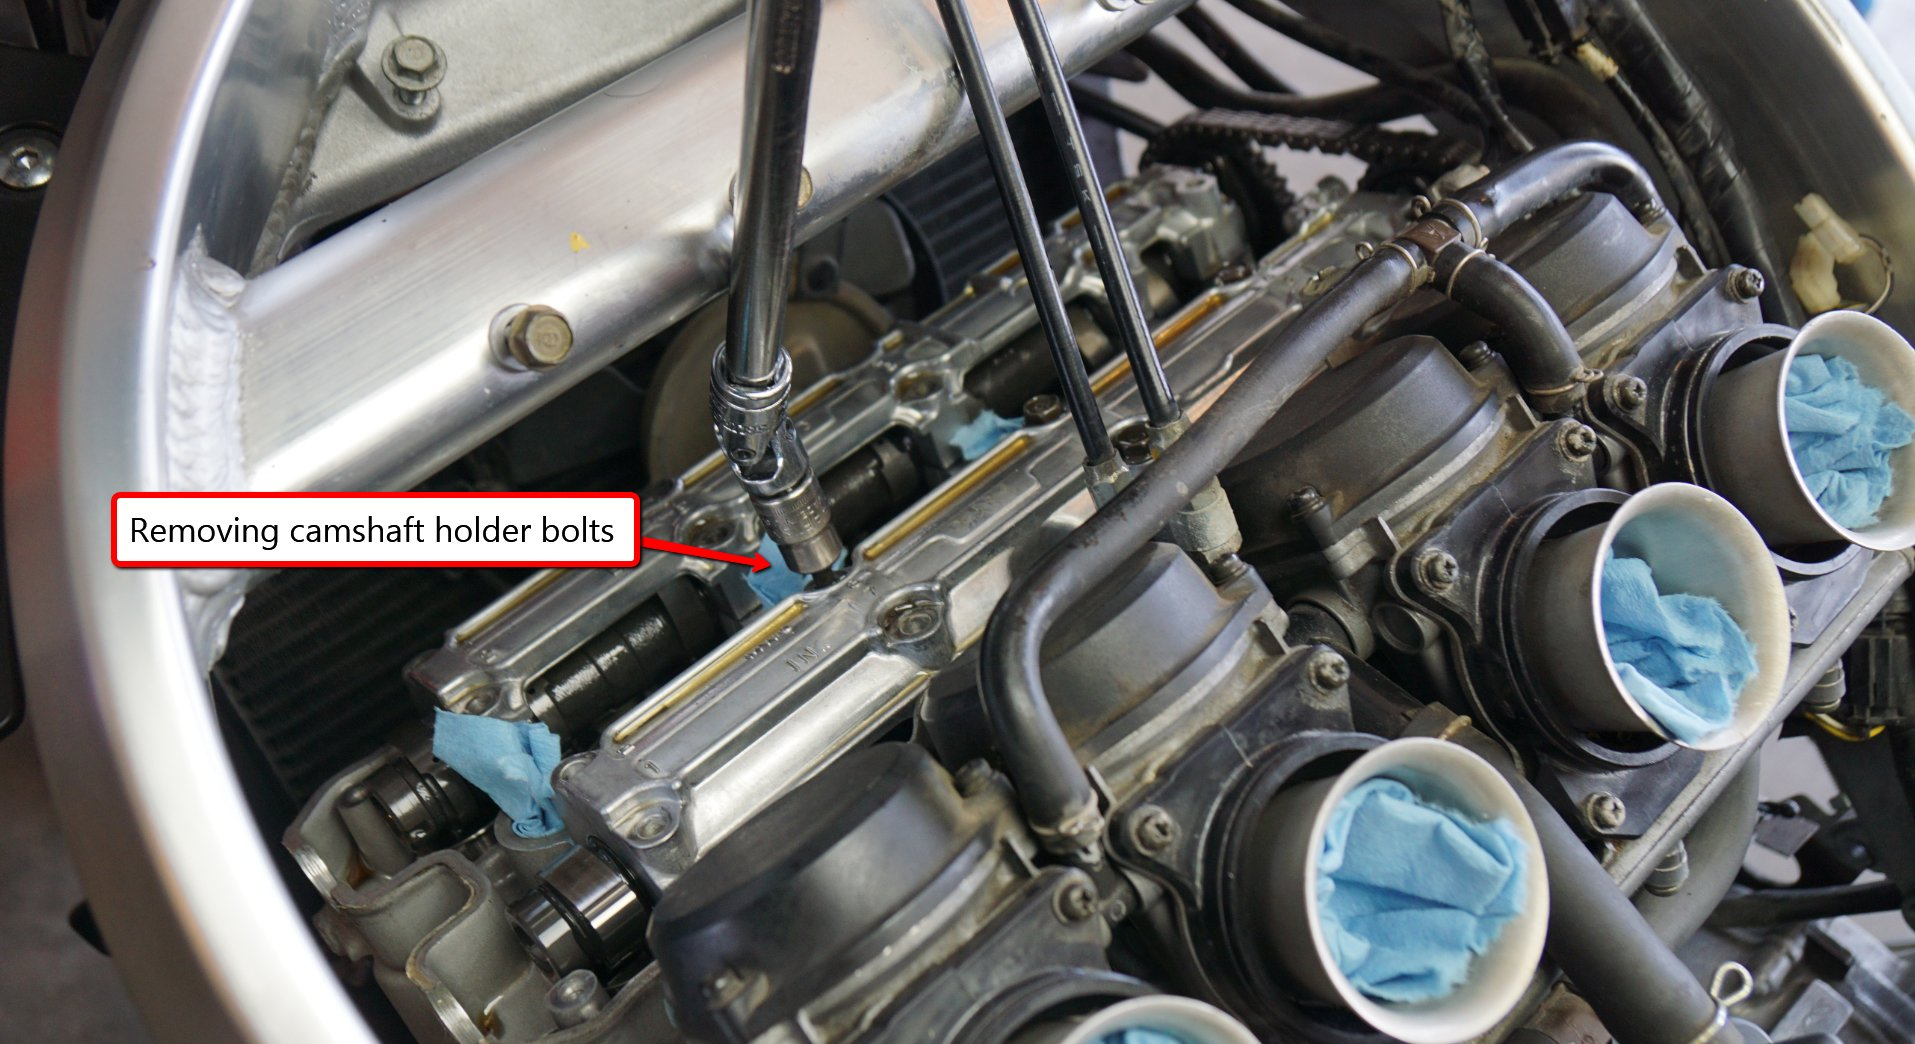 prox_motorcycle_valve_adjustment (15)